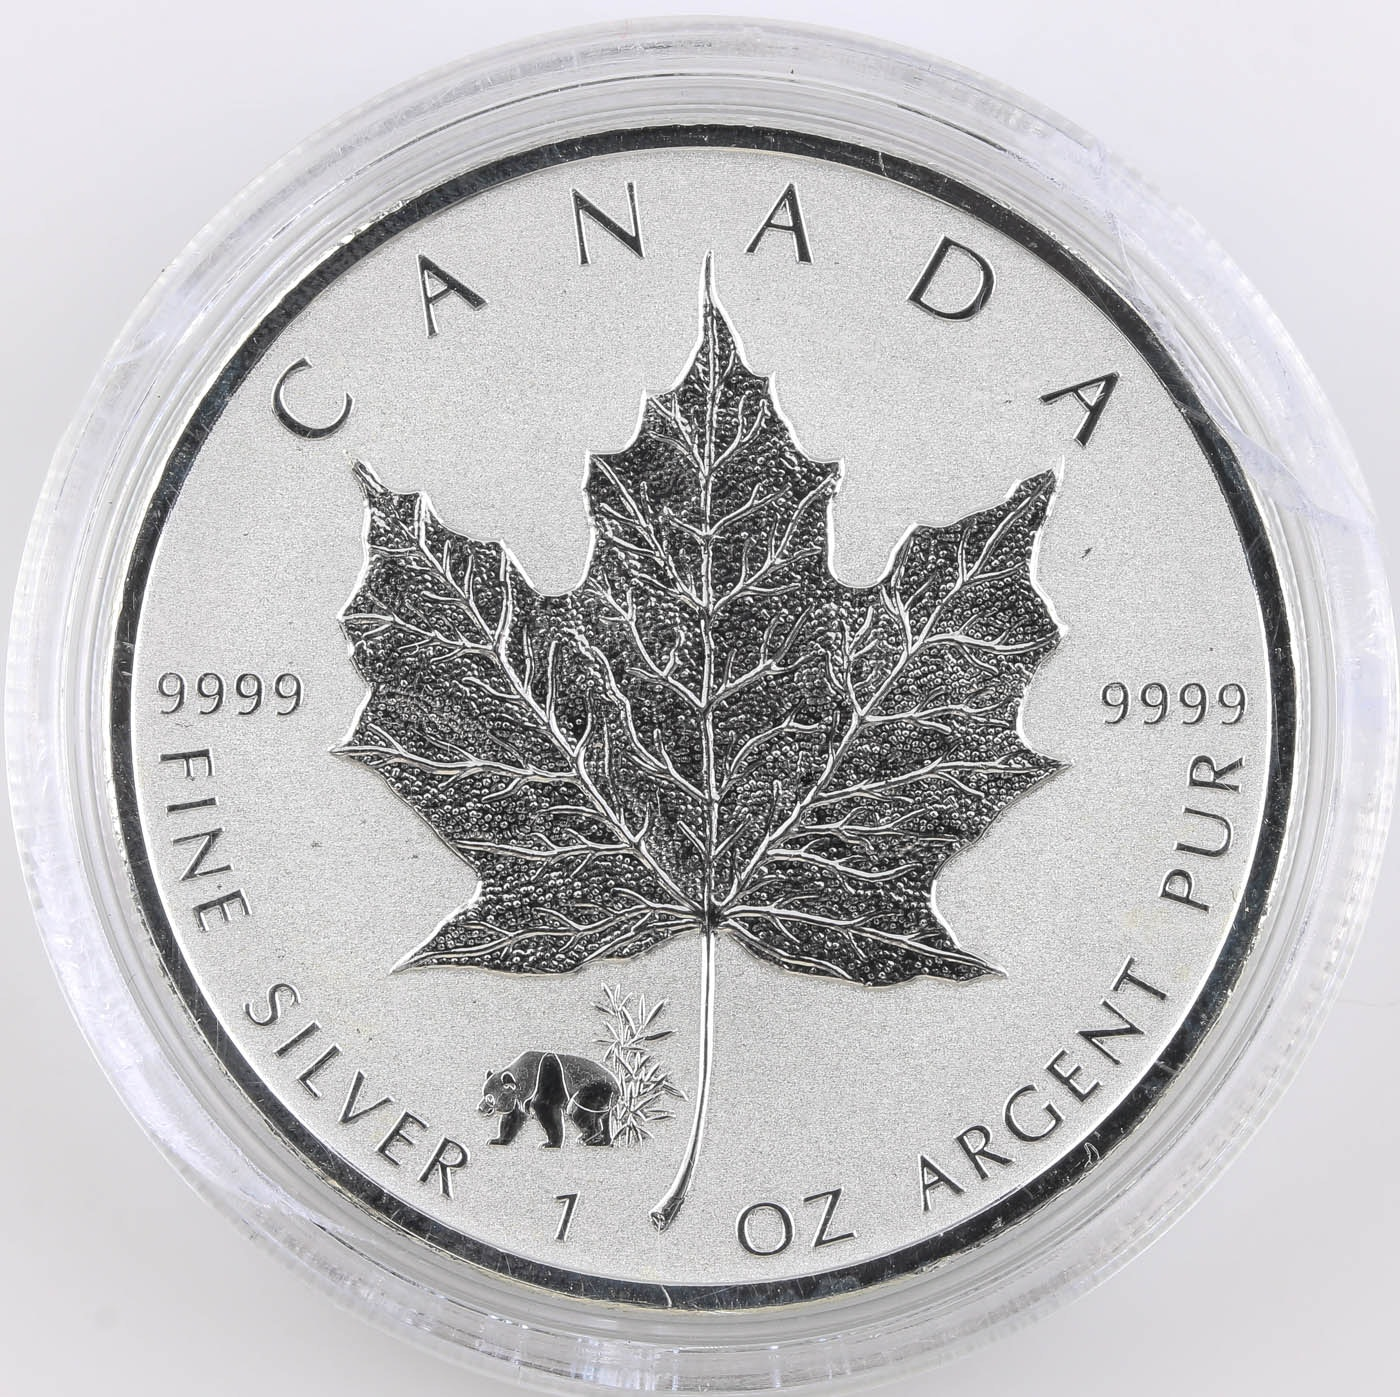 2017 Panda Canadian Silver Maple Leaf Five Dollar Coin